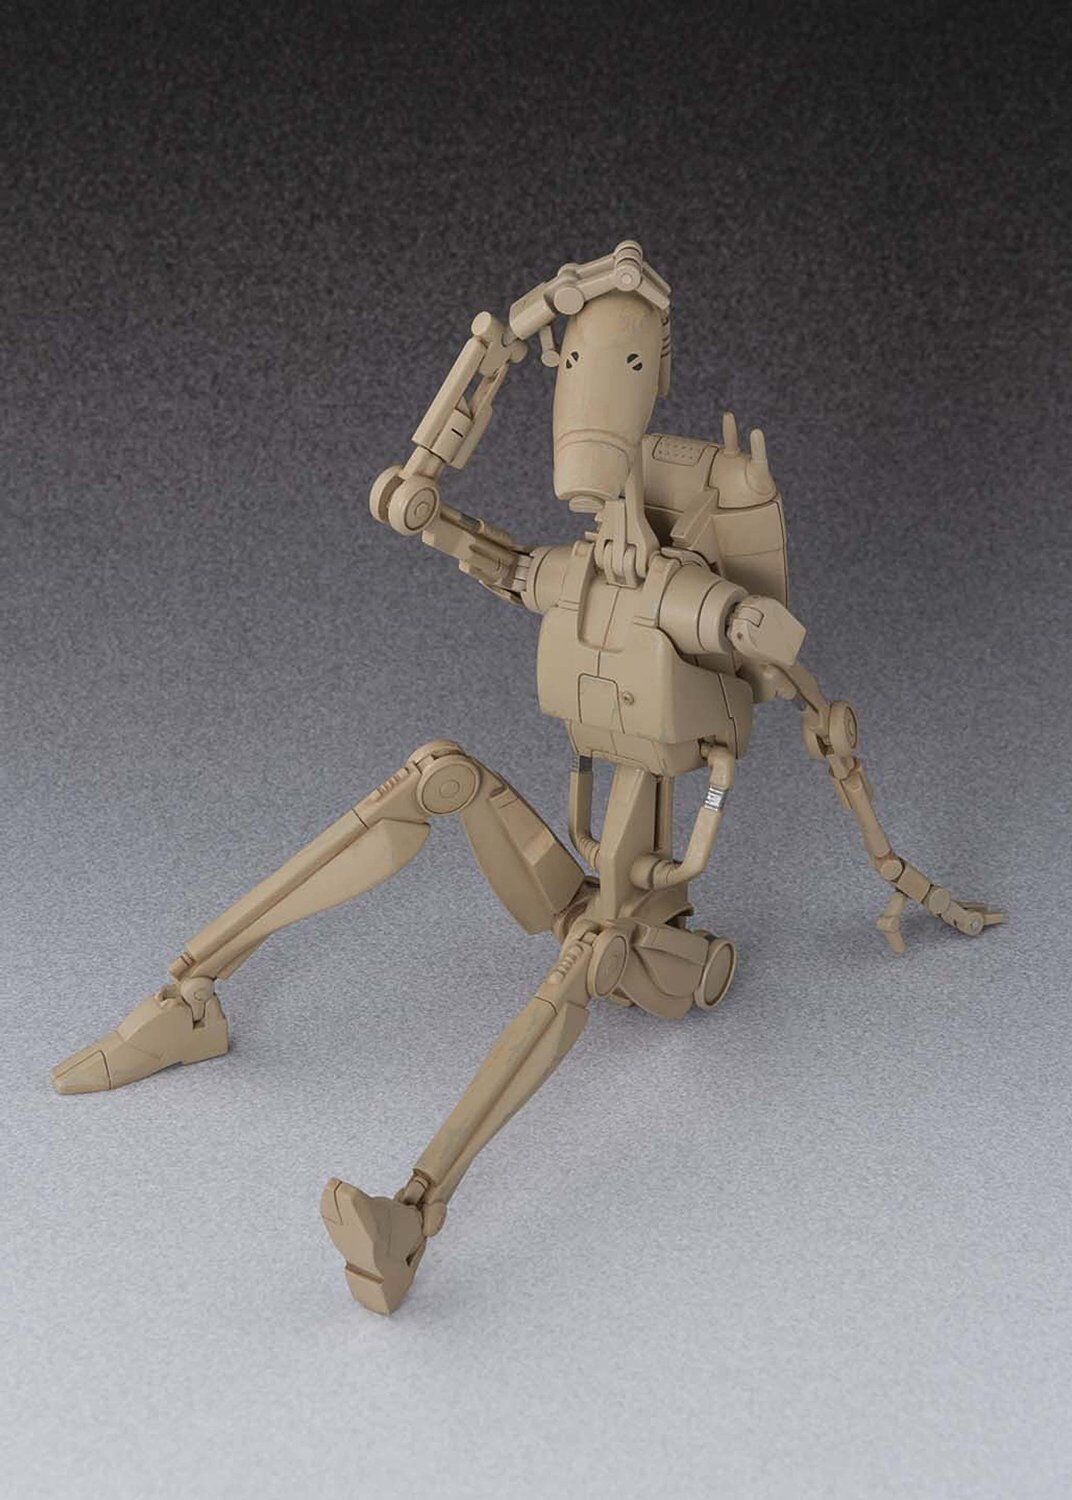 BANDAI S.H.FIGUARTS STAR WARS BATTLE DROID